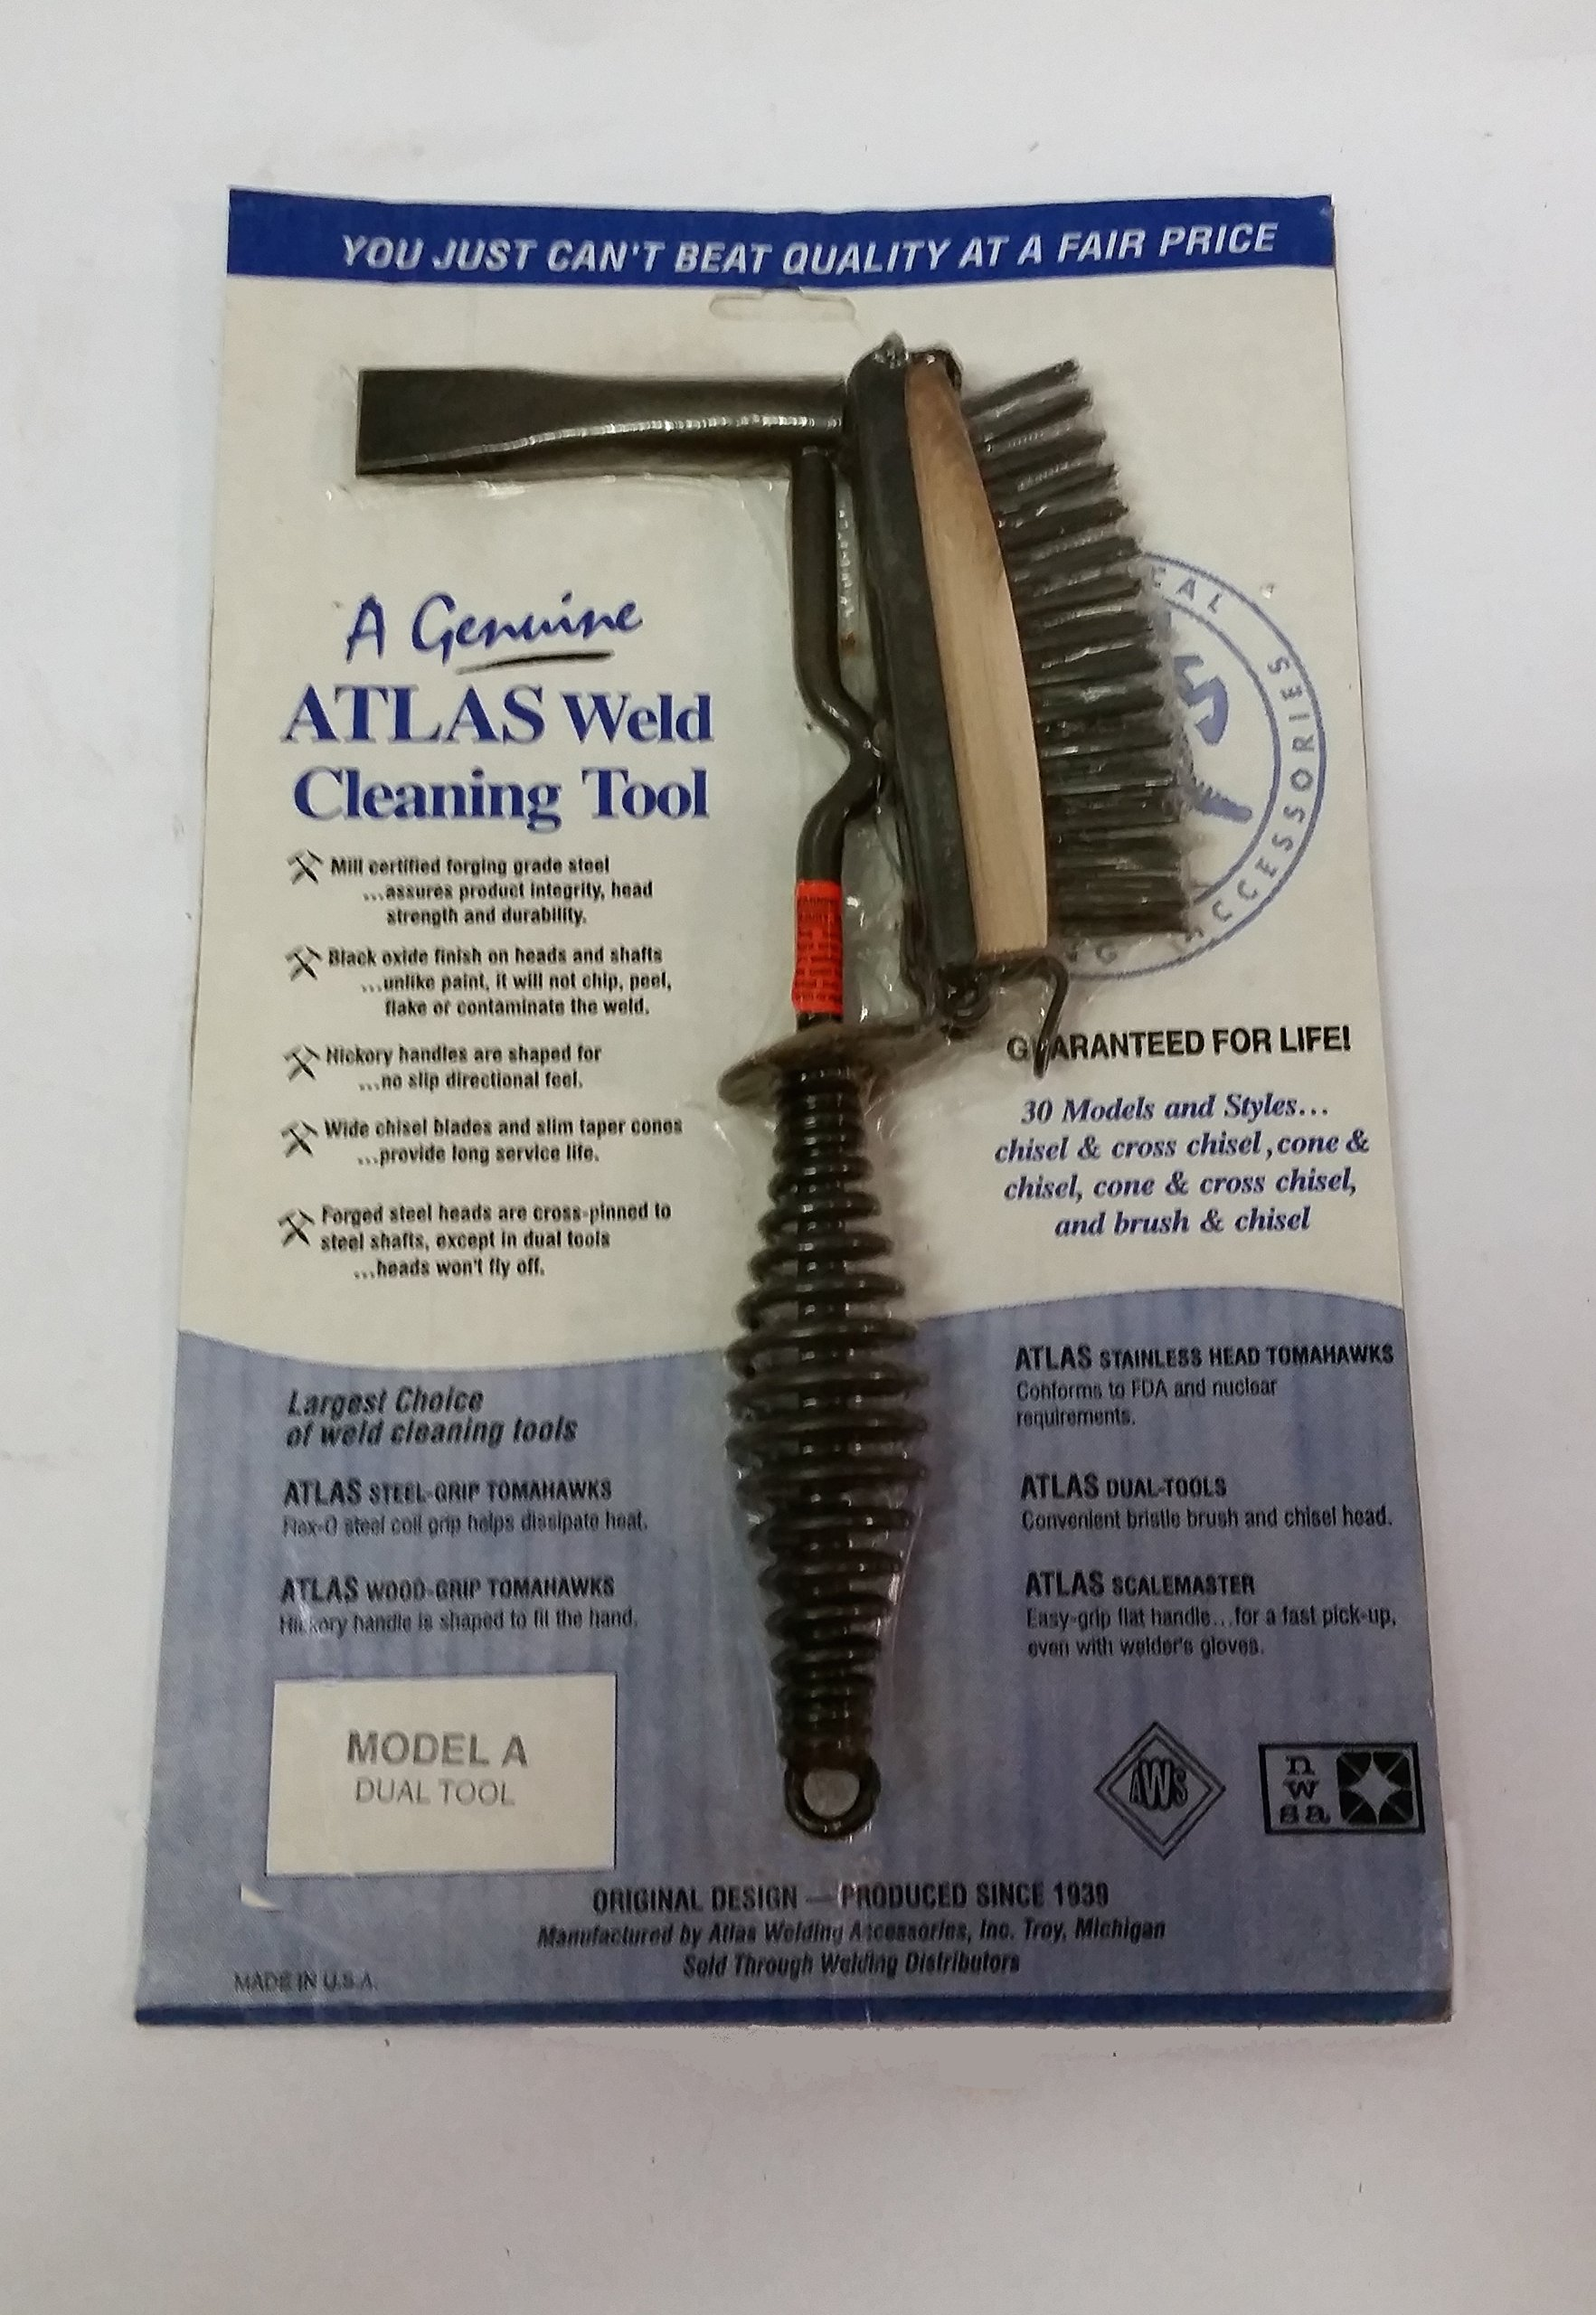 Atlas Brand (USA Made) Weld Cleaning and Chipping Hammer - Dual Tool Model A